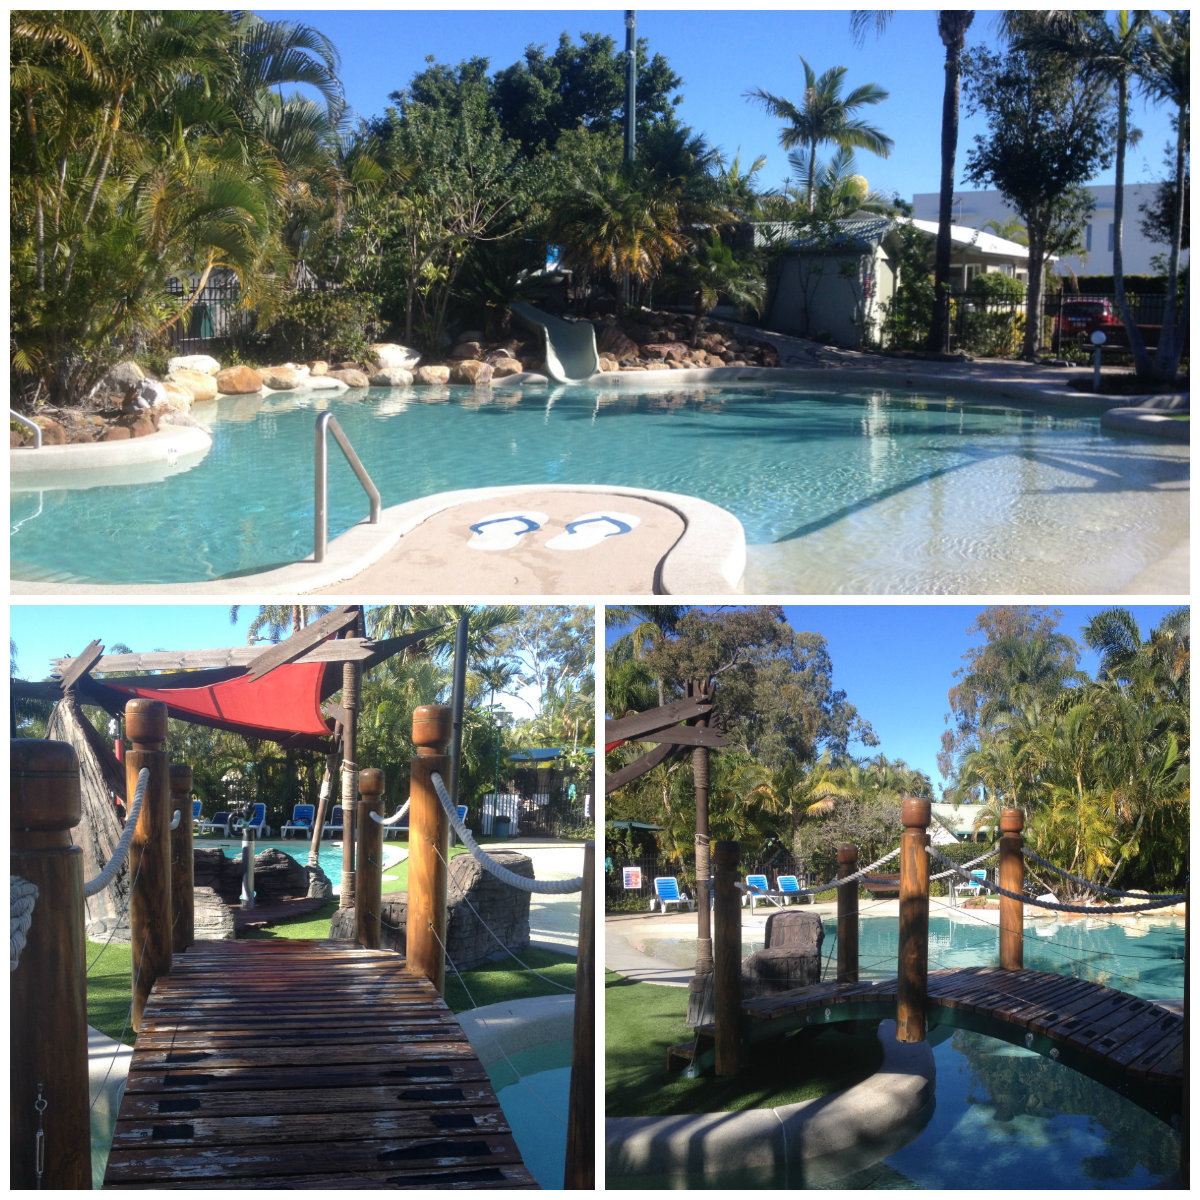 Nrma Treasure Island Resort And Holiday